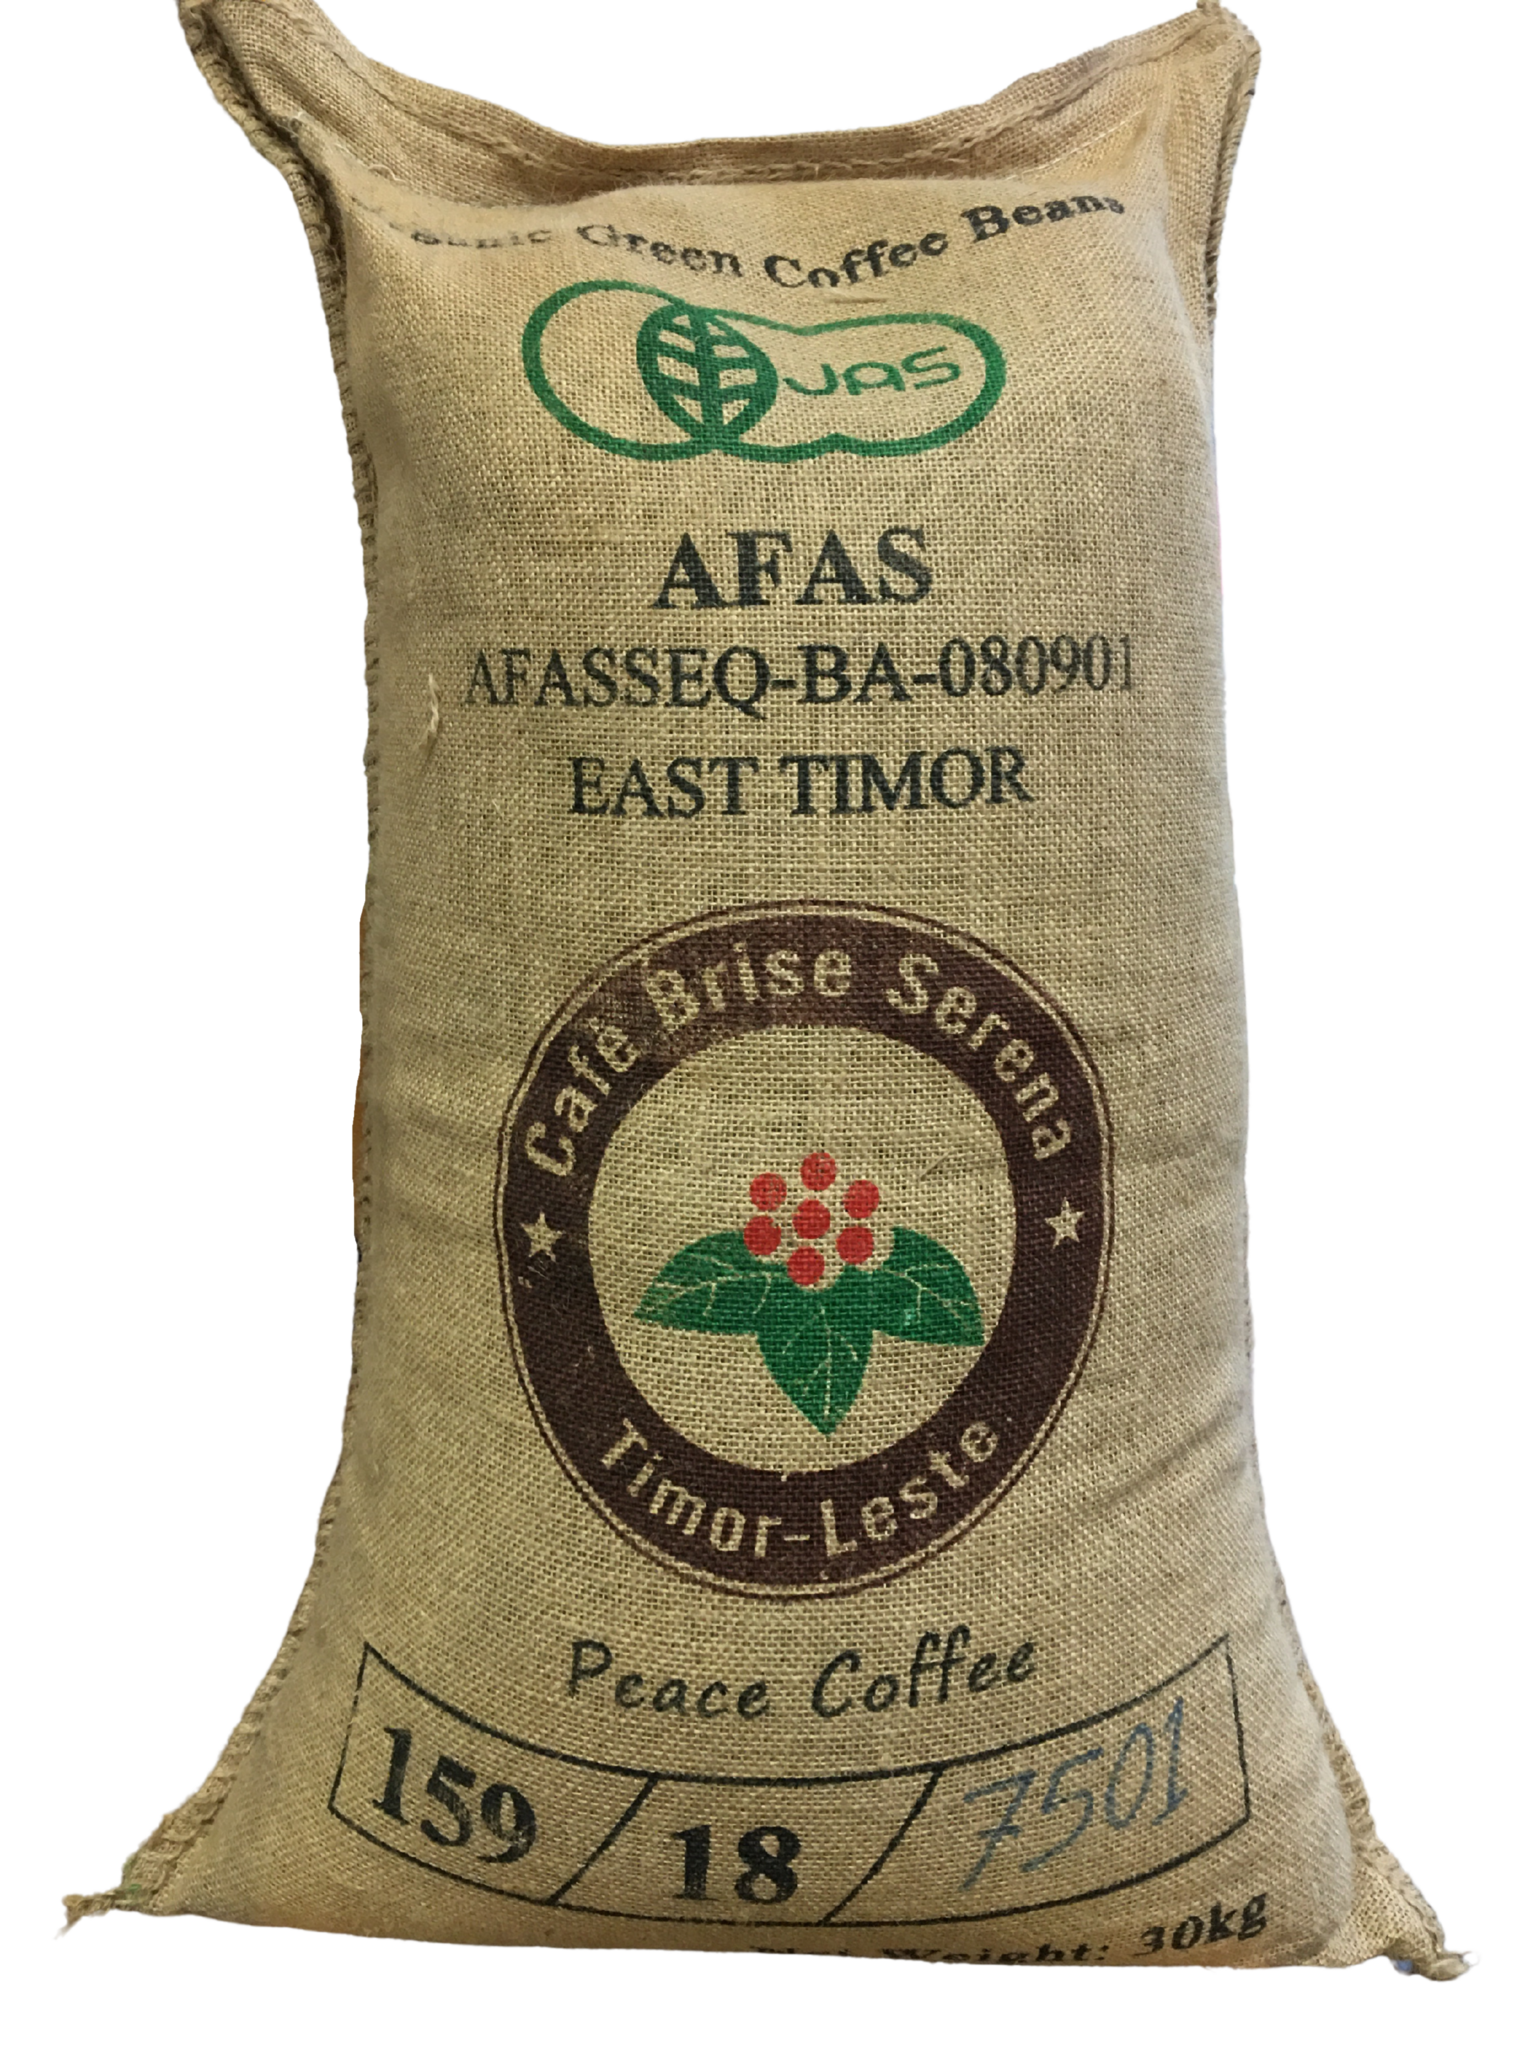 ARTcoffee East-Timor Goulala Village koffie 73